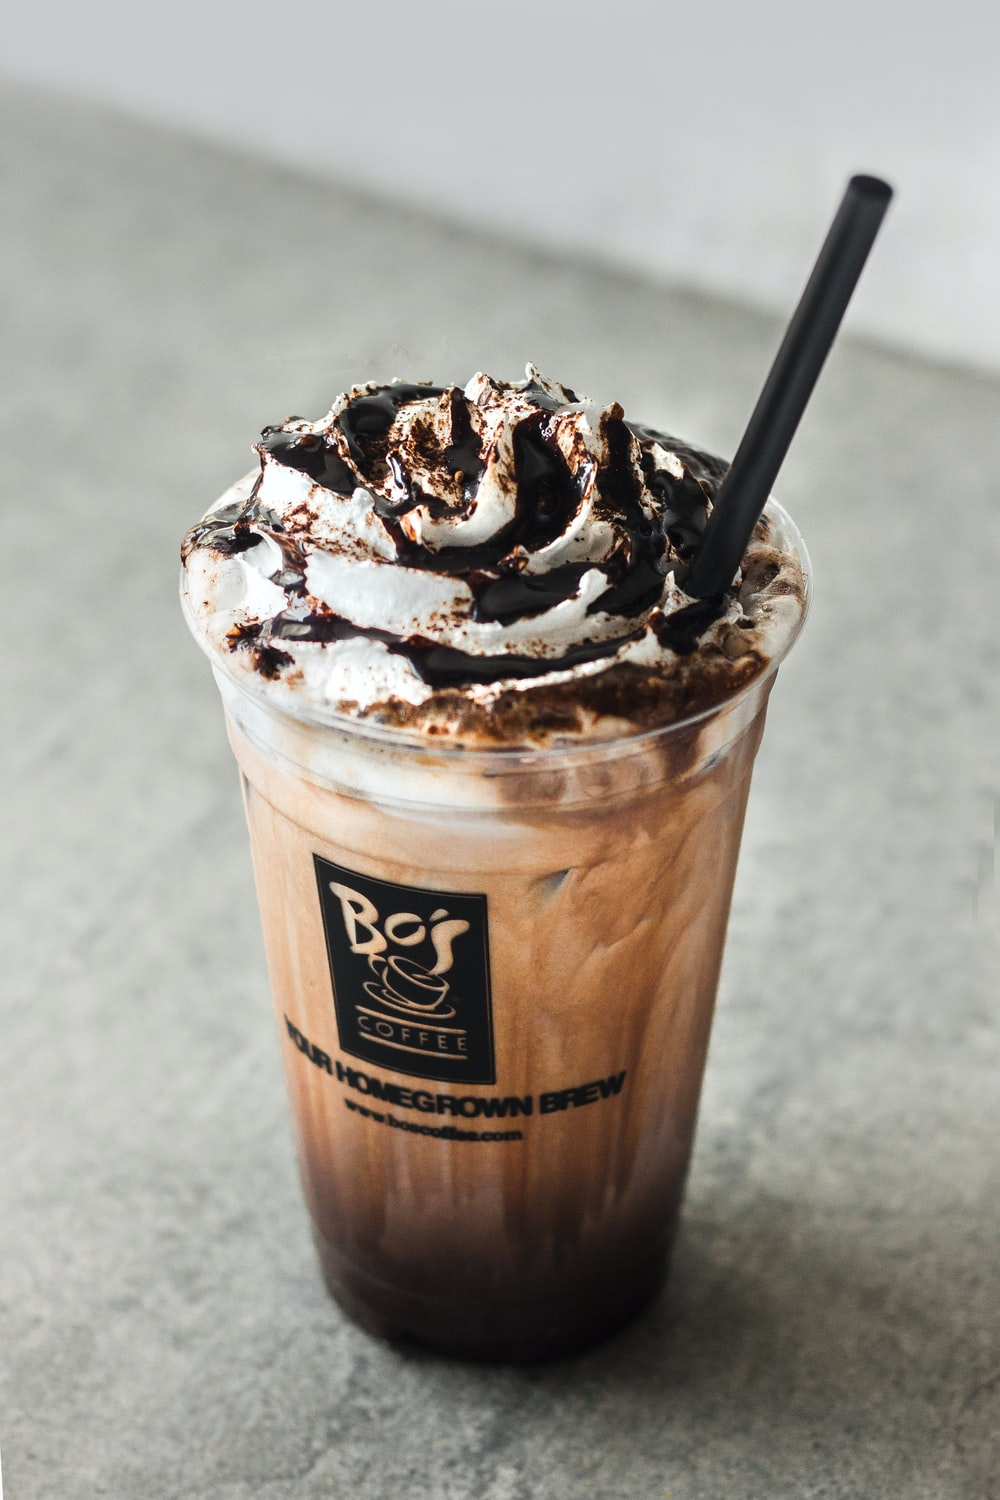 ice coffee cup on gray surface